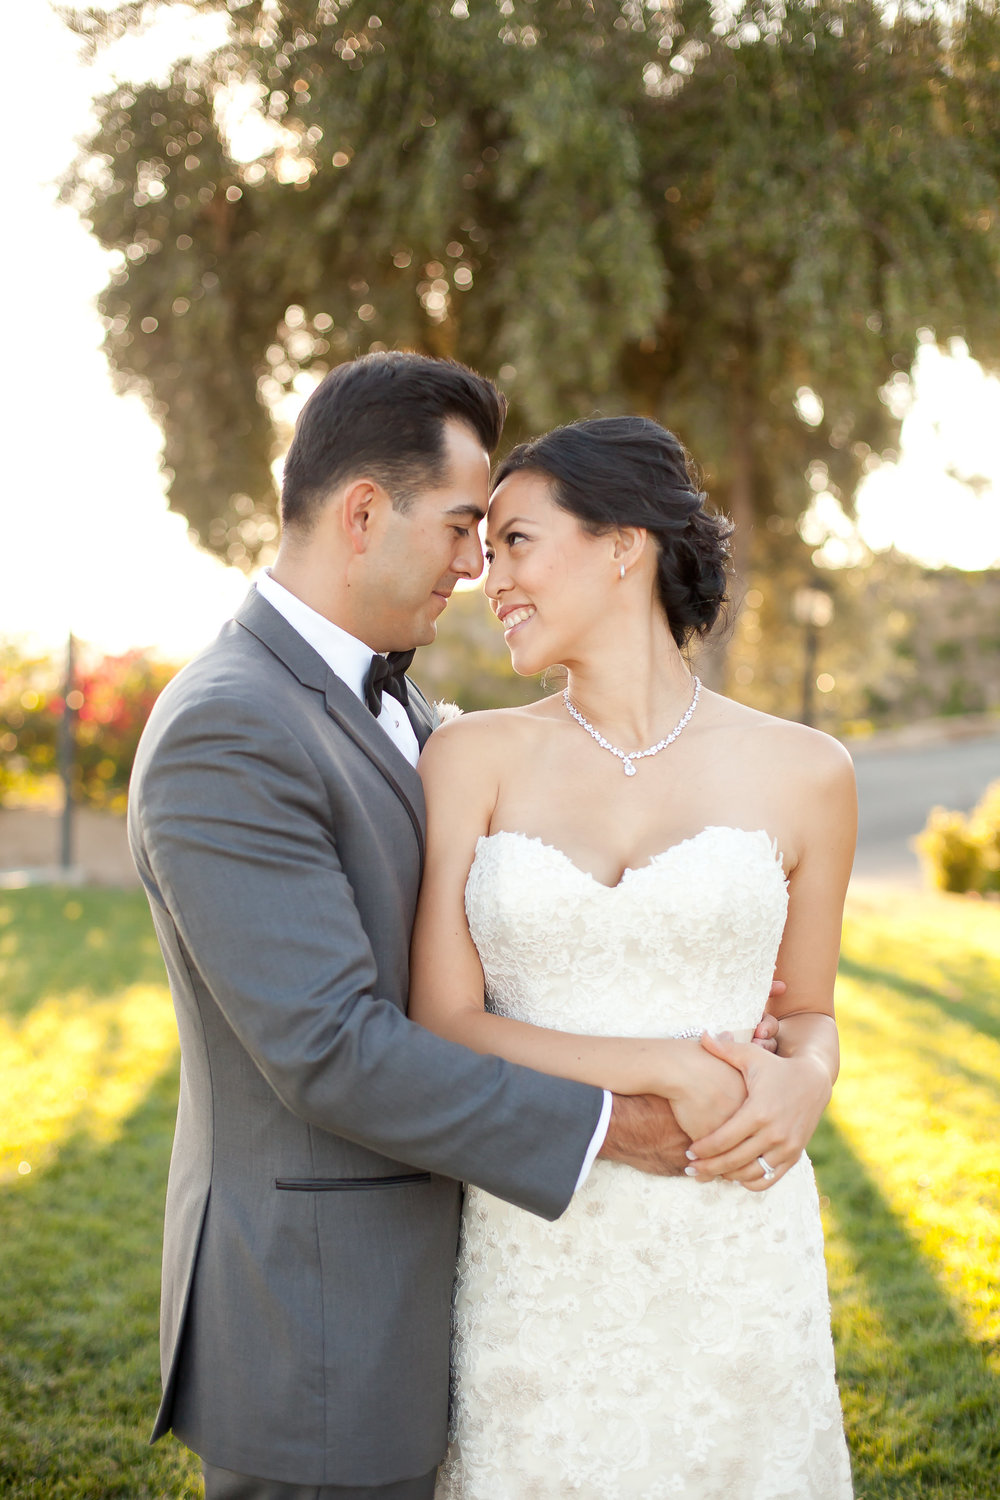 Bride and Groom at Sunset | Michelle Garibay Events